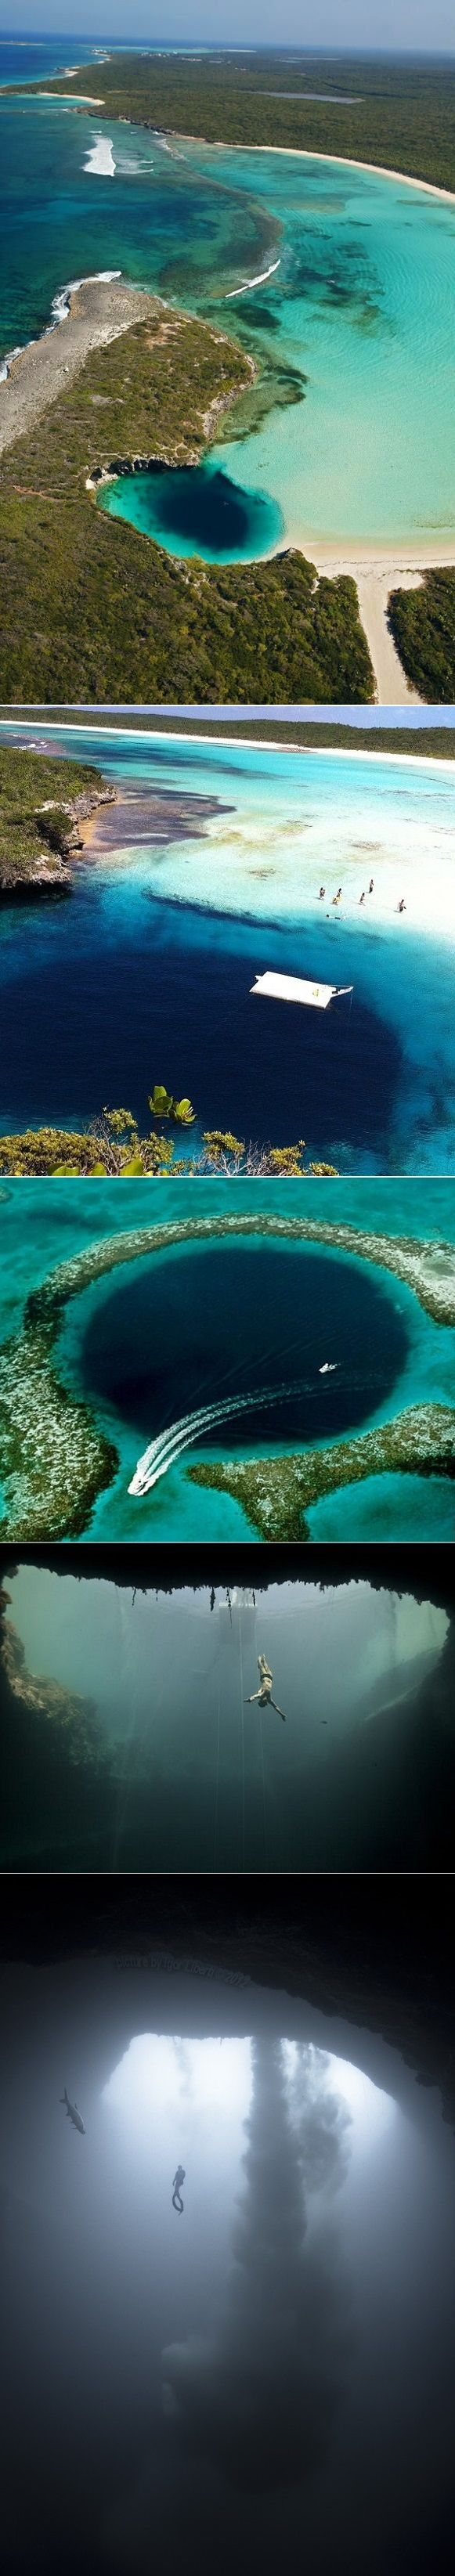 Shots of Dean's Blue Hole in Long Island, Bahamas. Go on over to www.bahamas.com for more info about visiting the Bahamas. #LongIsland #Bahamas #ItsBetterInTheBahamas